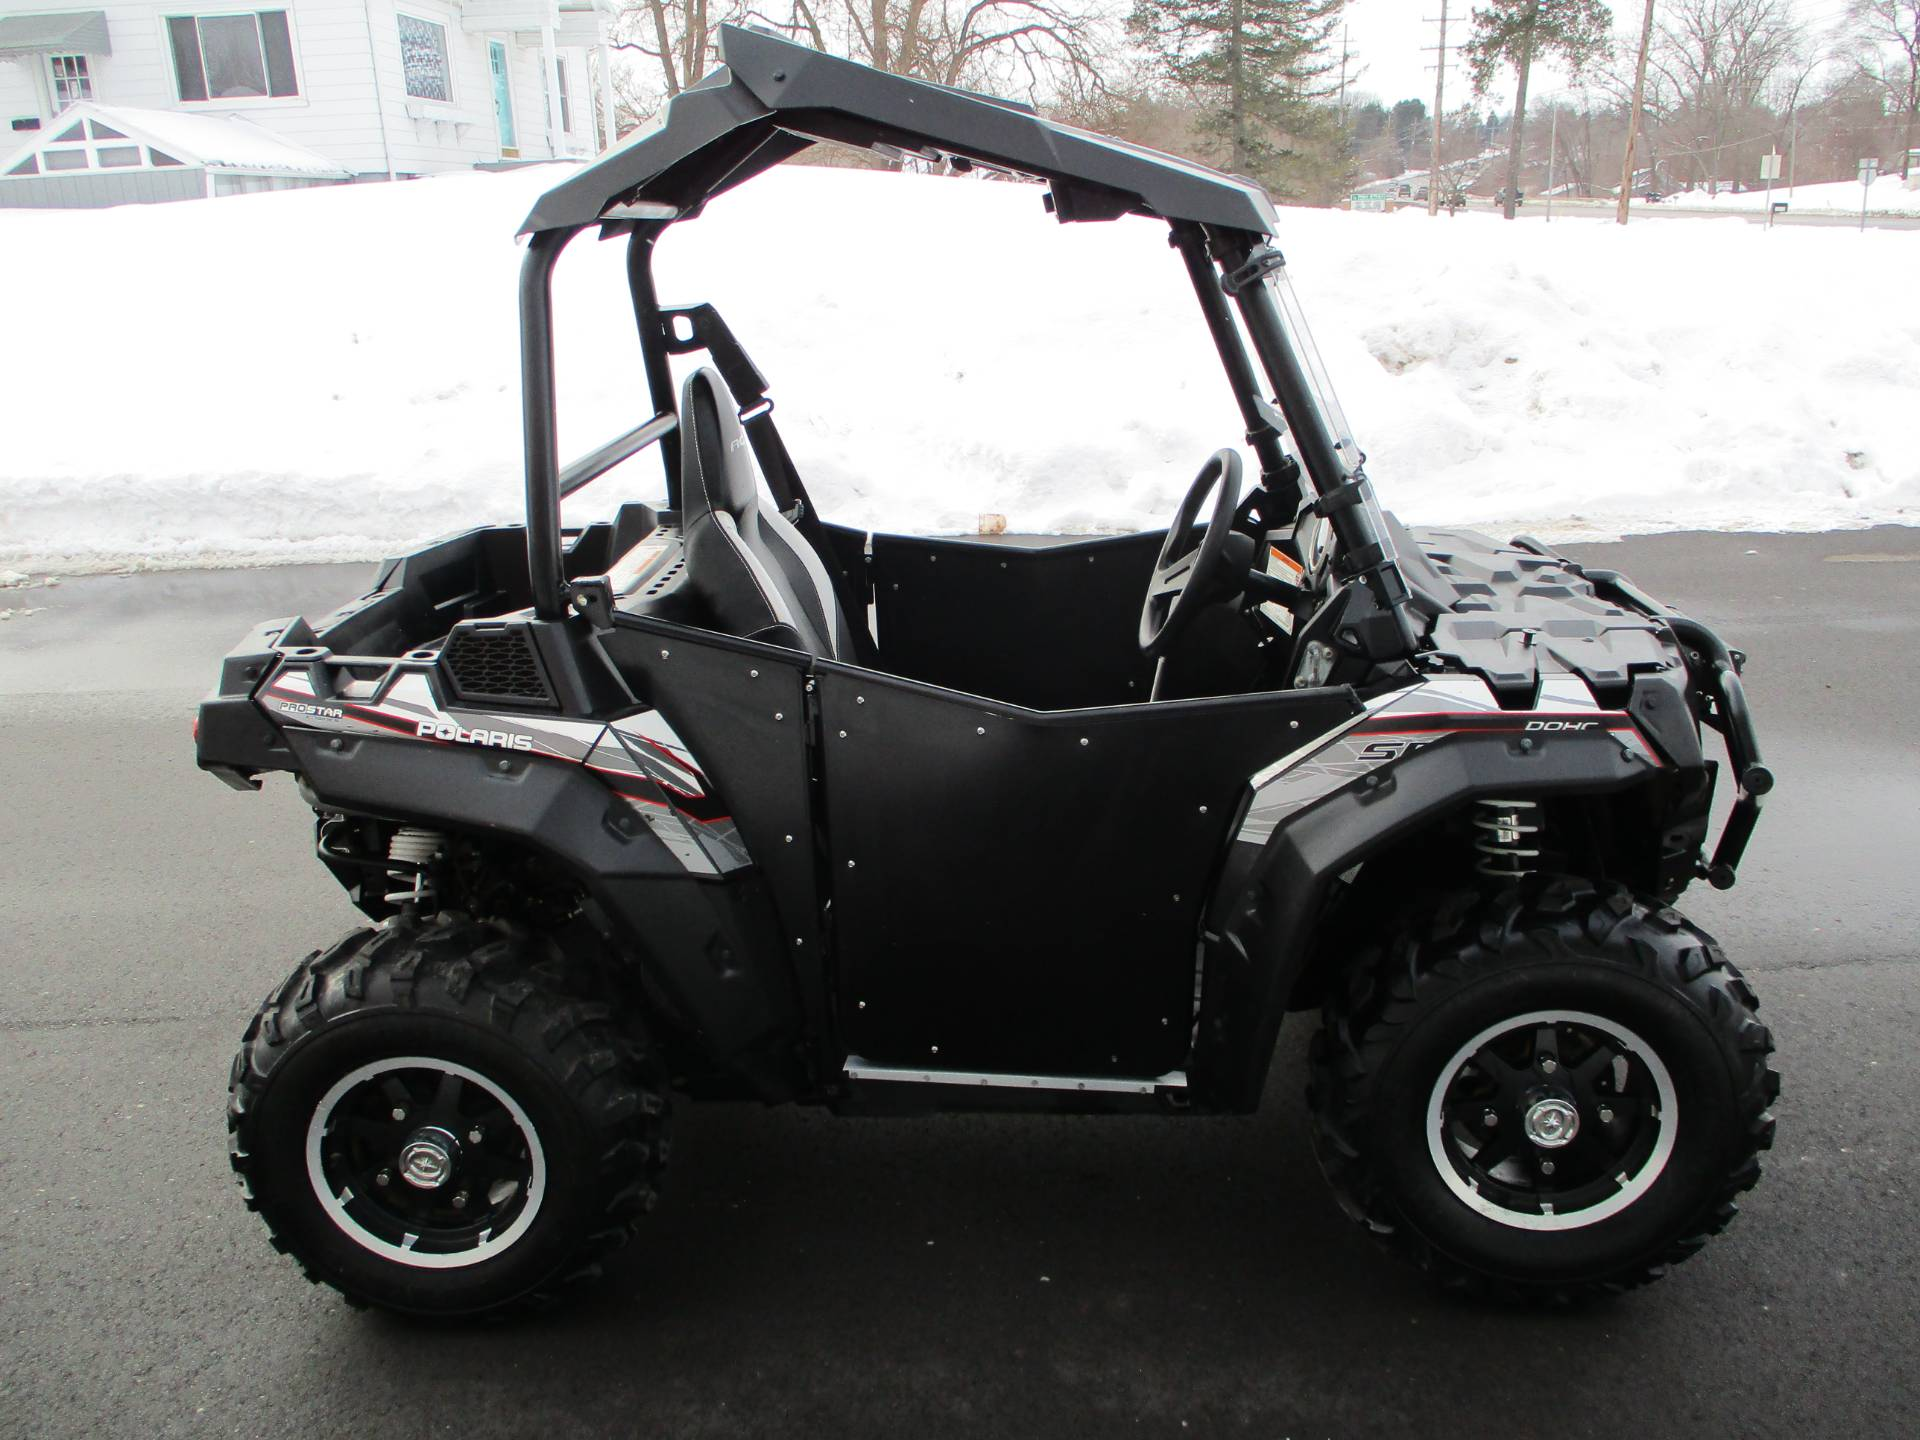 2016 Polaris ACE 900 SP in Howell, Michigan - Photo 17